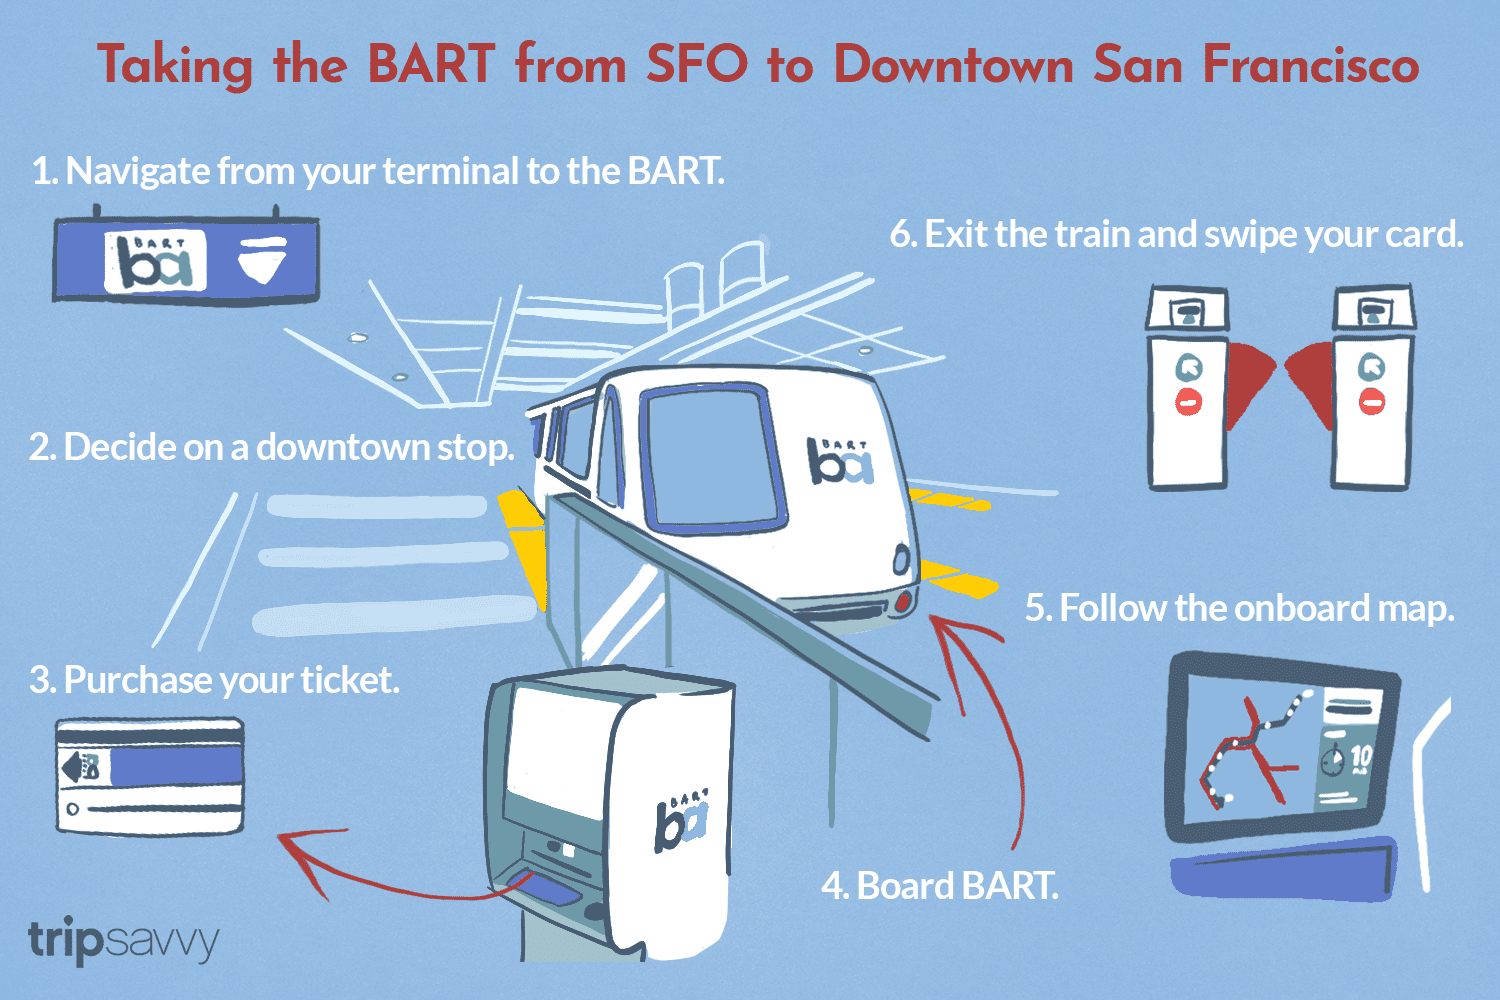 How to Take BART from SFO to Downtown San Francisco San Francisco Bart Route Map on bart station map, bart line map, san francisco bus routes, bart extension map, amtrak route map, los angeles metro route map, sf bart map, east bay bart map, bart hotel map, bay area bart route map, bart rail map, sfo bart map, bart super mario map, washington metro route map, bart system map, bart schedule & map, bay area rail map, bart subway map, bart train map, bart parking map,